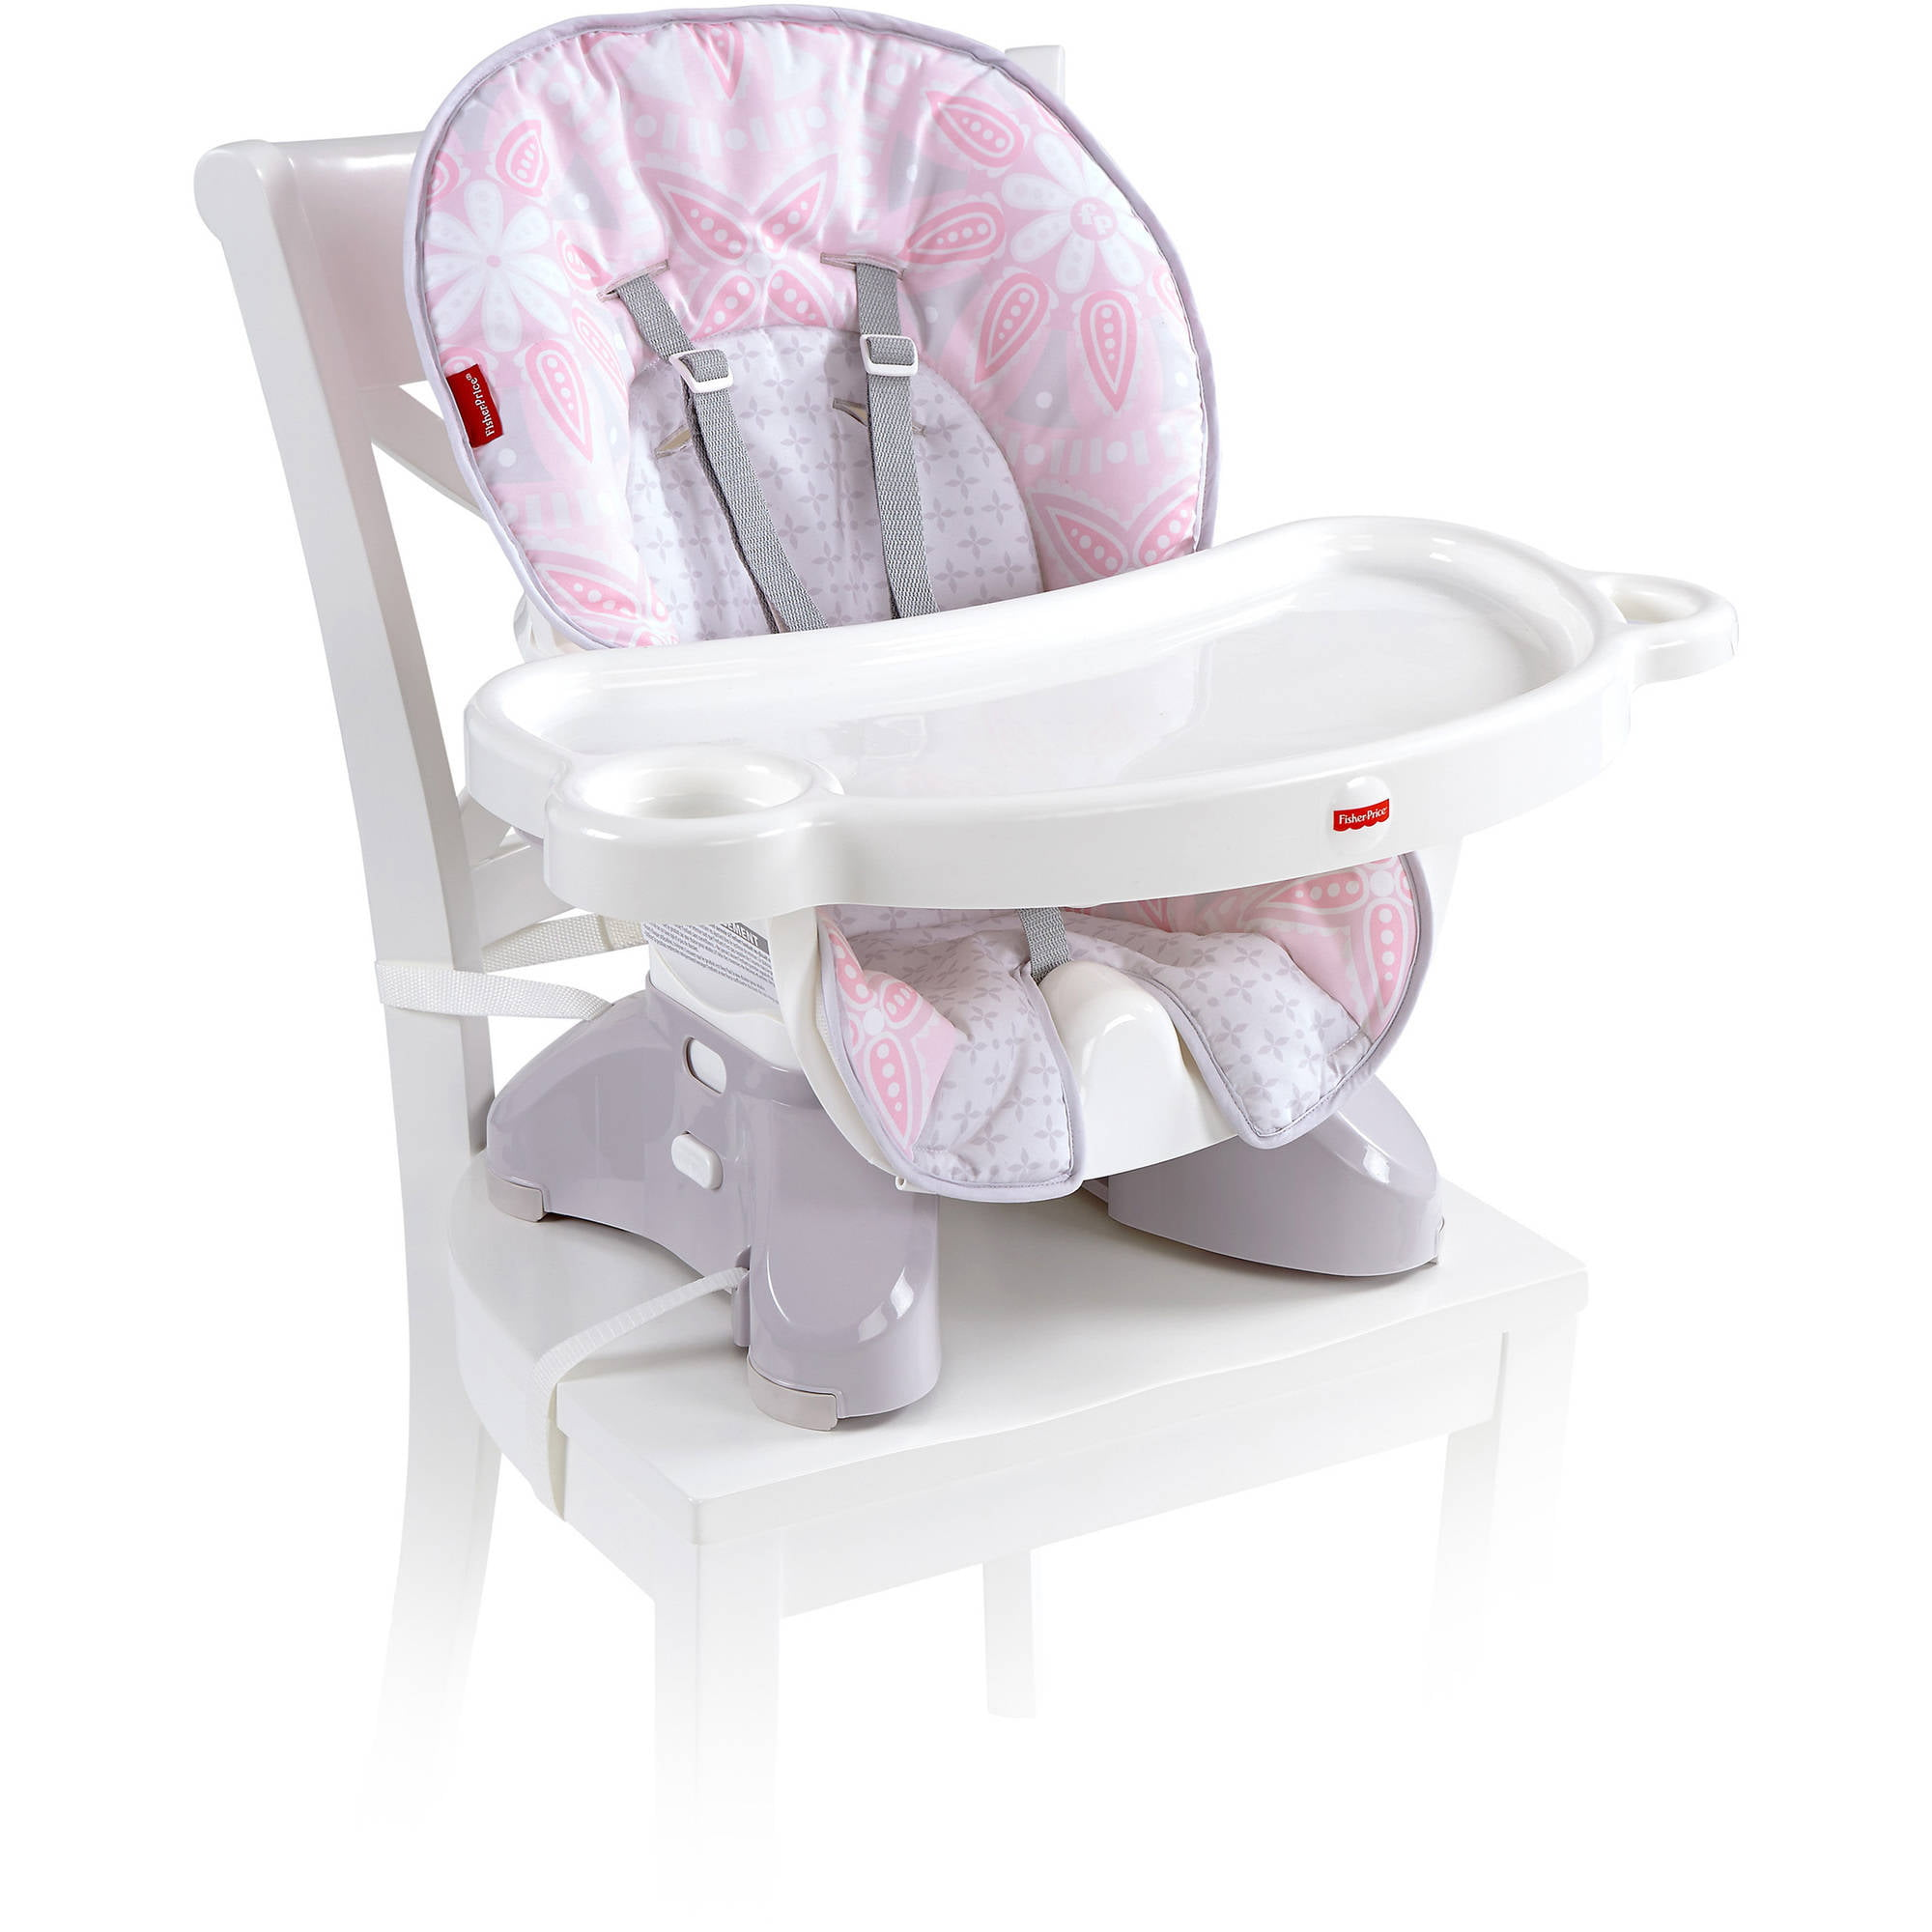 Merveilleux Fisher Price SpaceSaver High Chair   Walmart.com